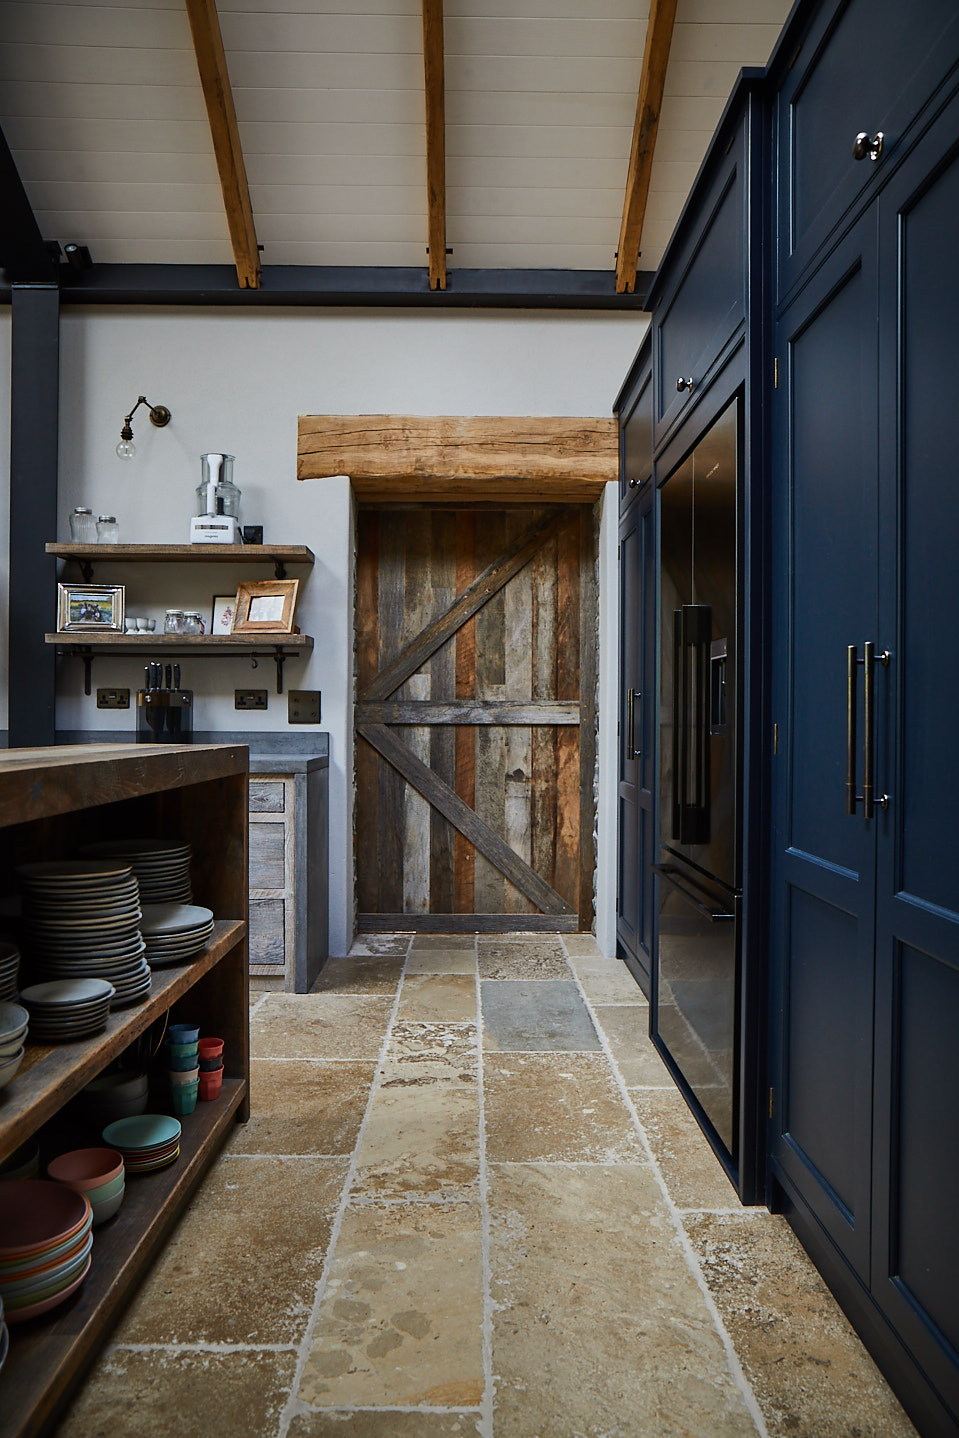 Reclaimed oak sliding barn door next to tall painted dark blue kitchen cabinets